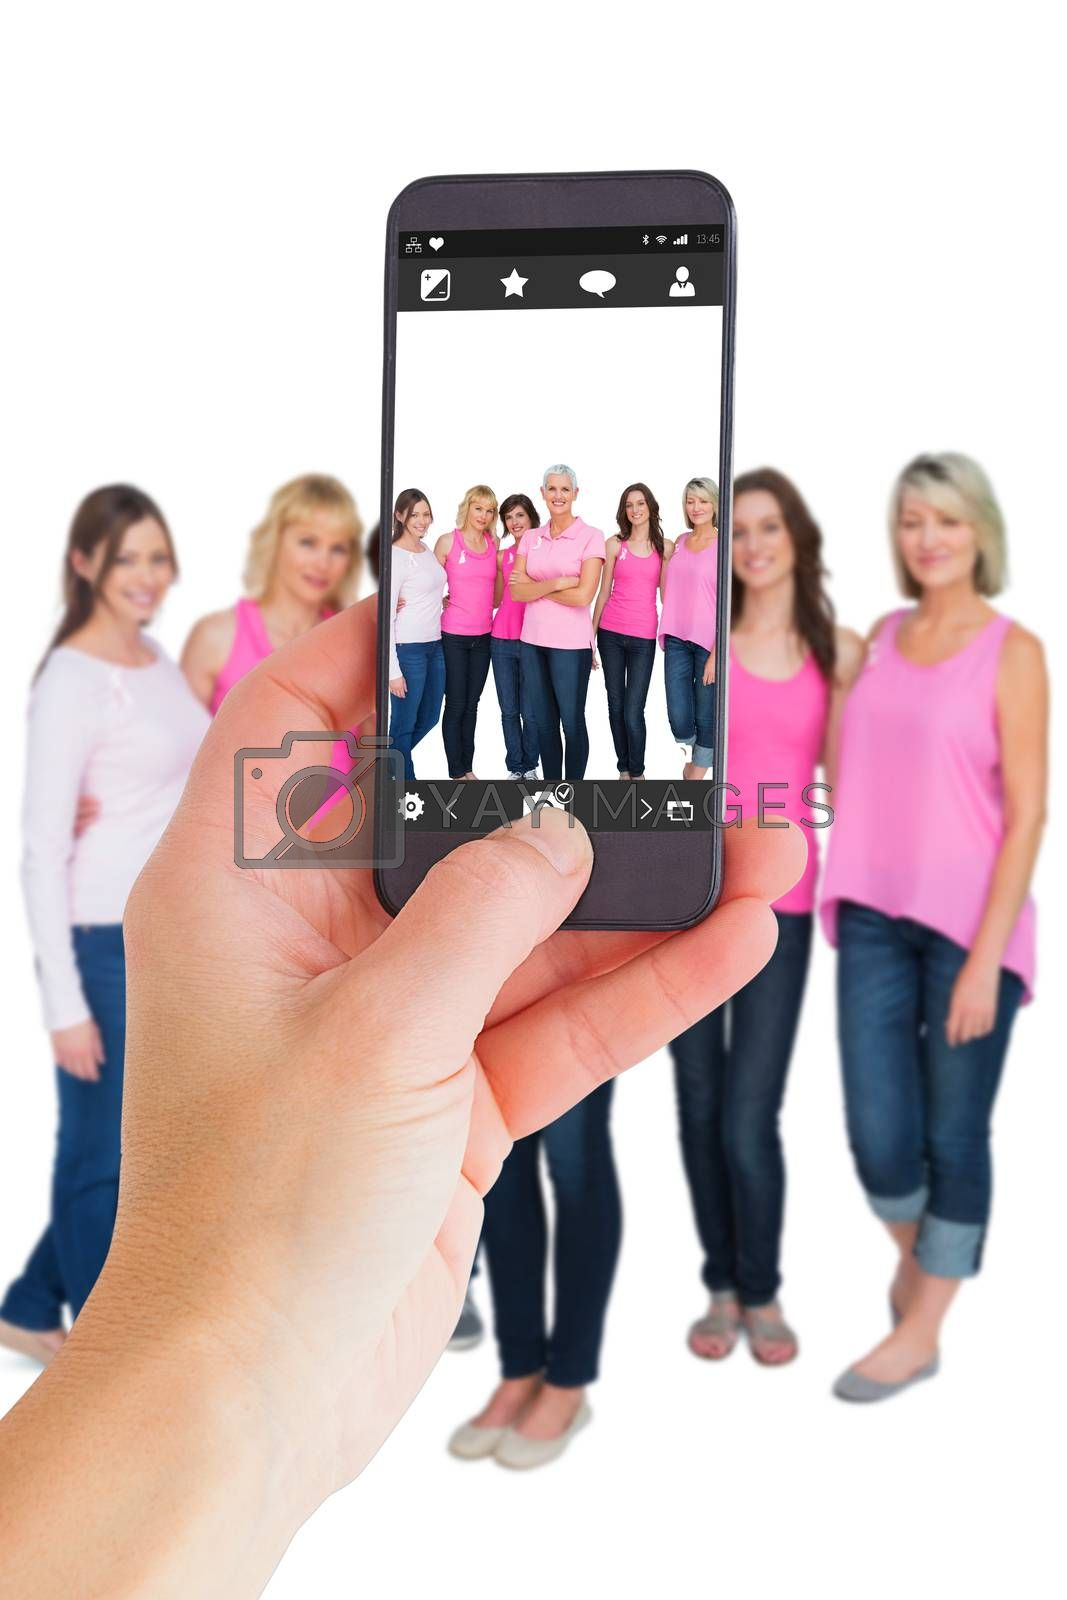 Female hand holding a smartphone against camera